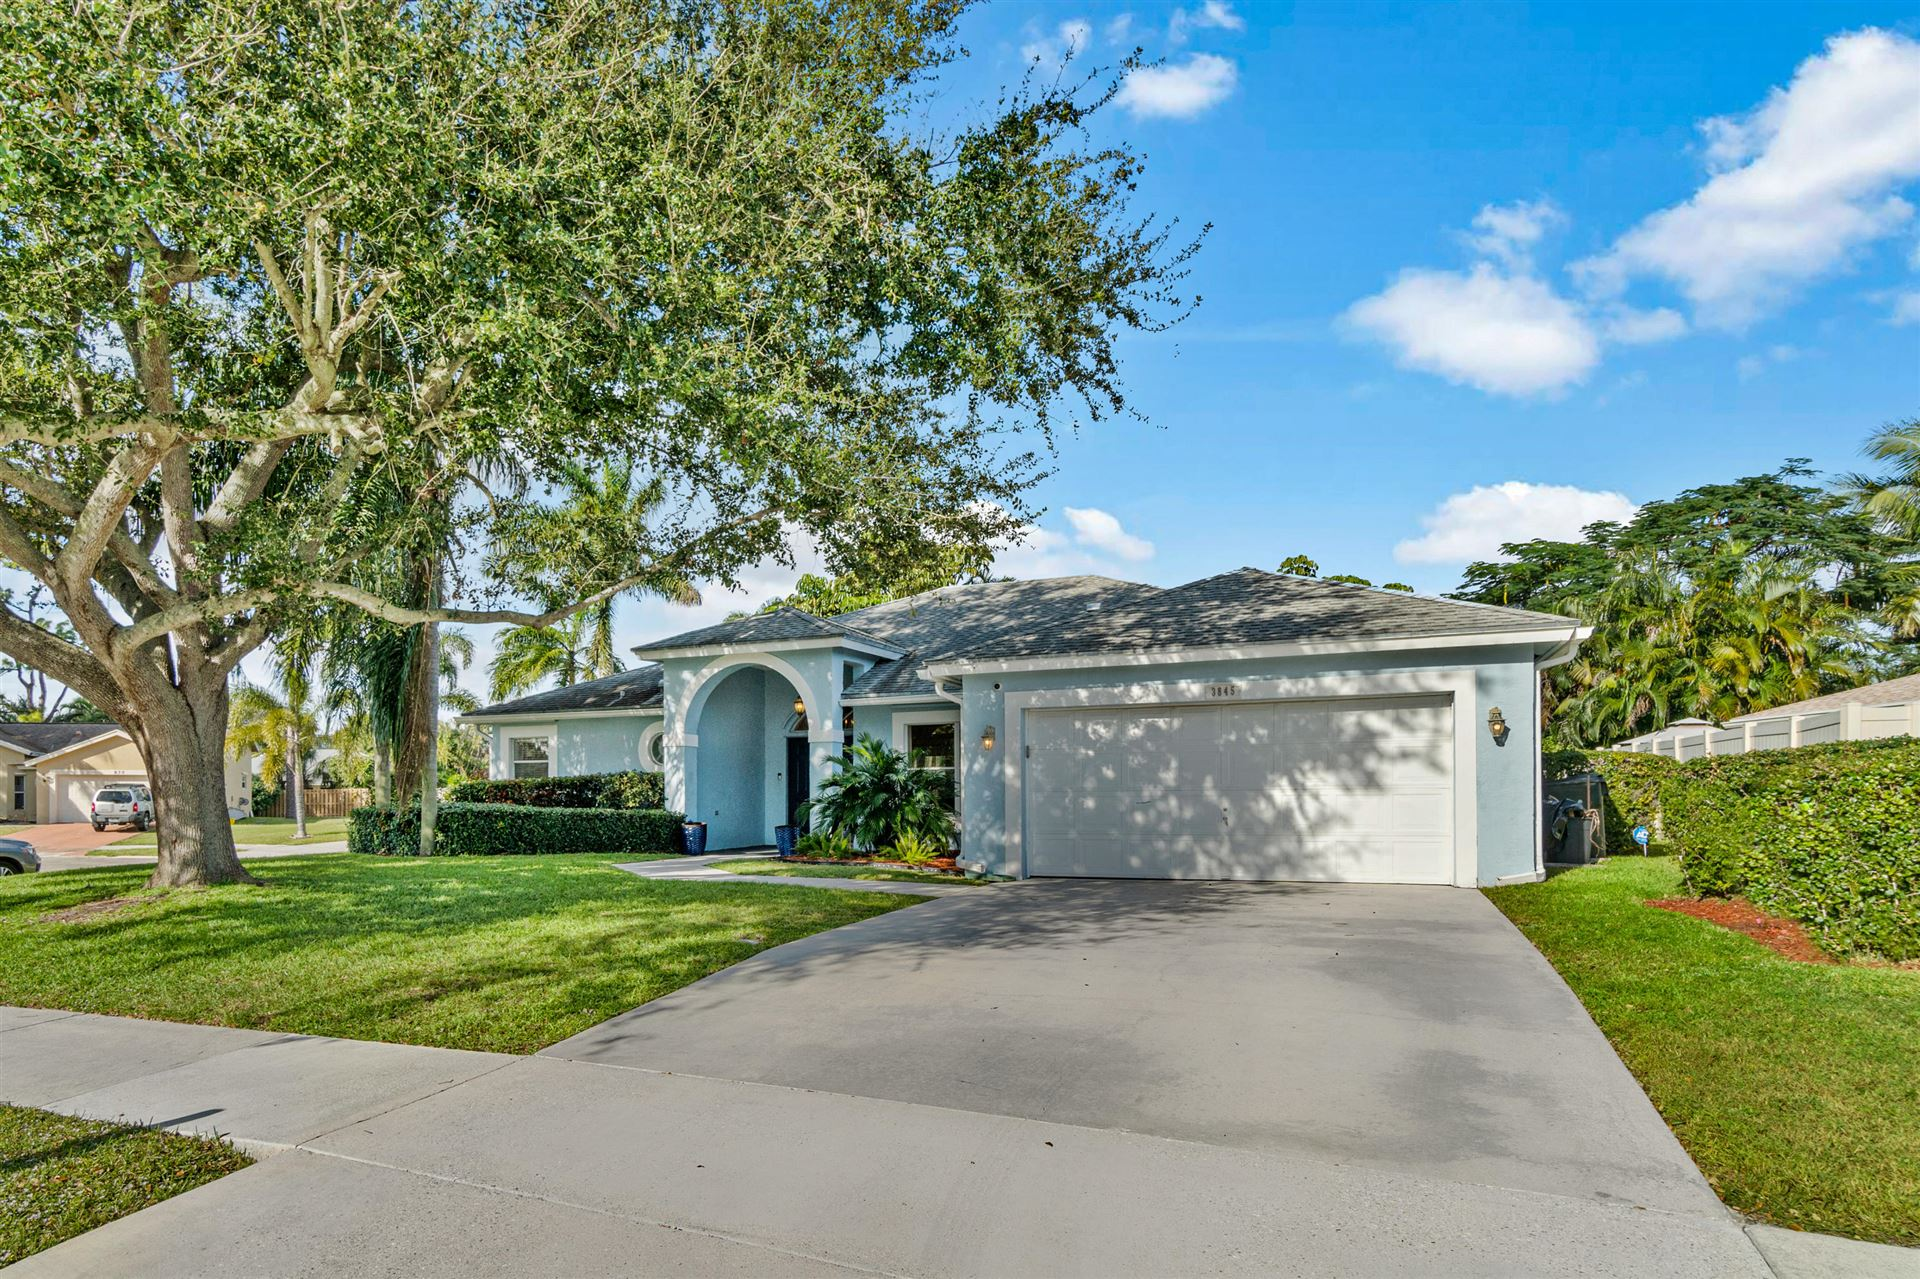 3845 NW 9th Street, Delray Beach, FL 33445 - #: RX-10675992